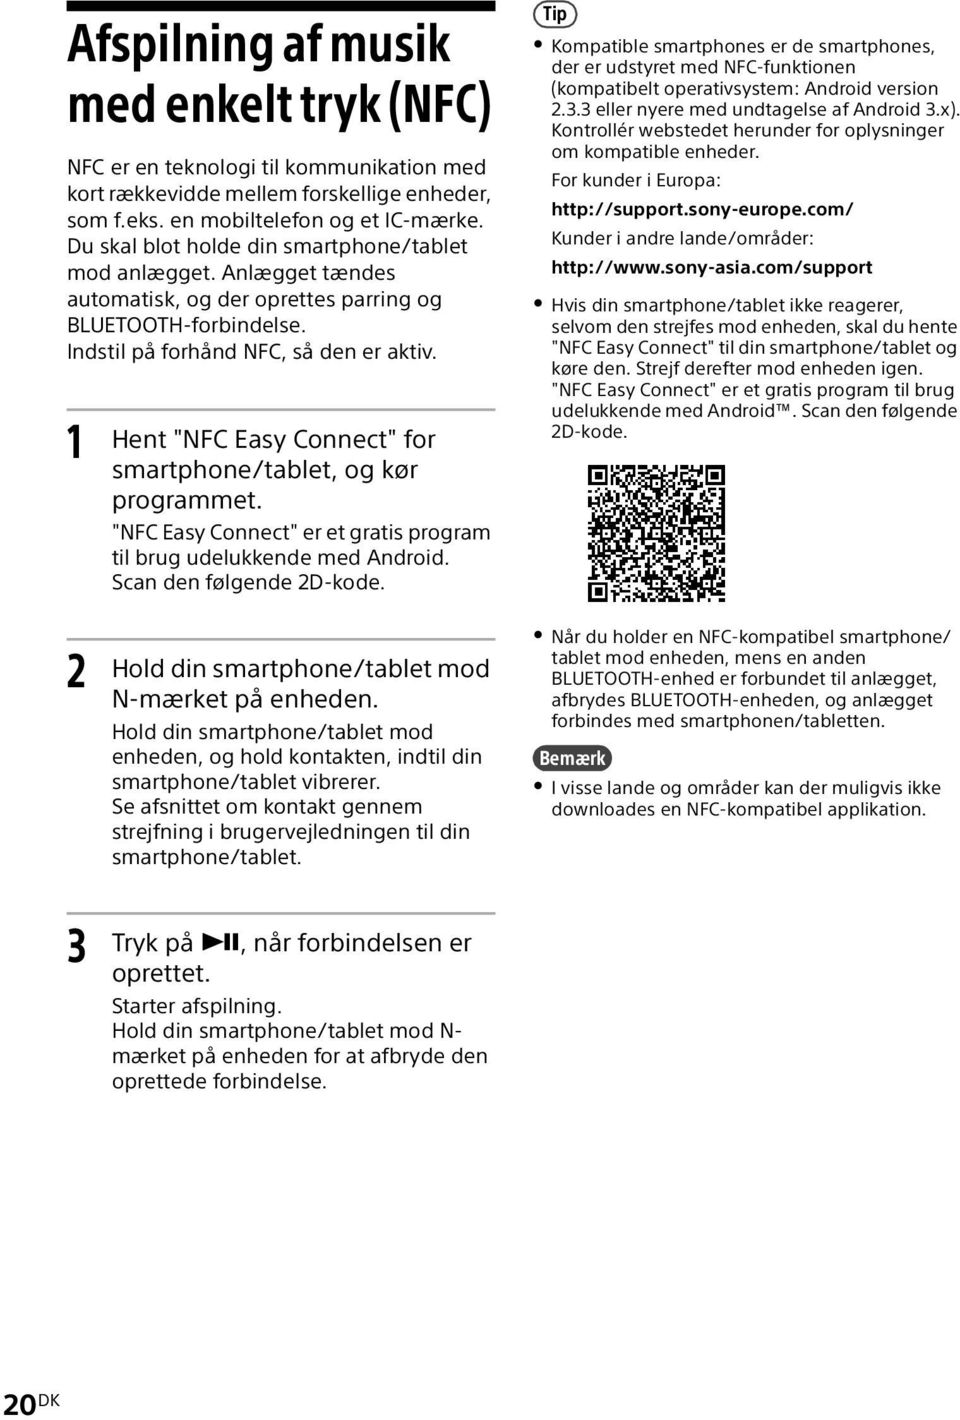 "1 Hent ""NFC Easy Connect"" for smartphone/tablet, og kør programmet. ""NFC Easy Connect"" er et gratis program til brug udelukkende med Android. Scan den følgende 2D-kode."